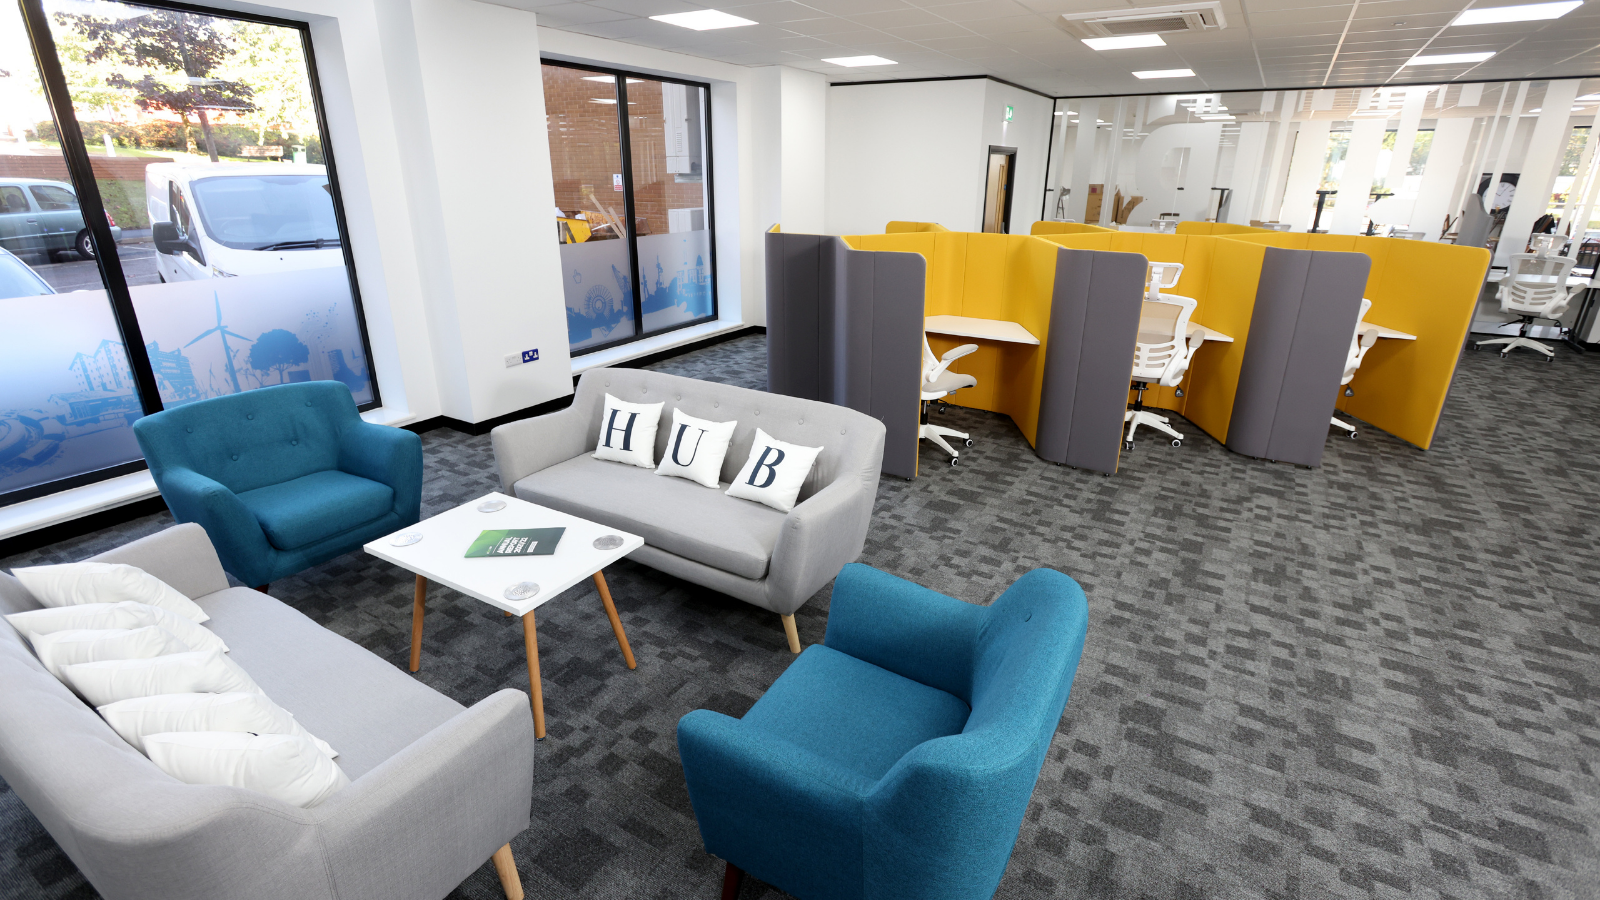 Forest of Dean Growth Hub co-working space